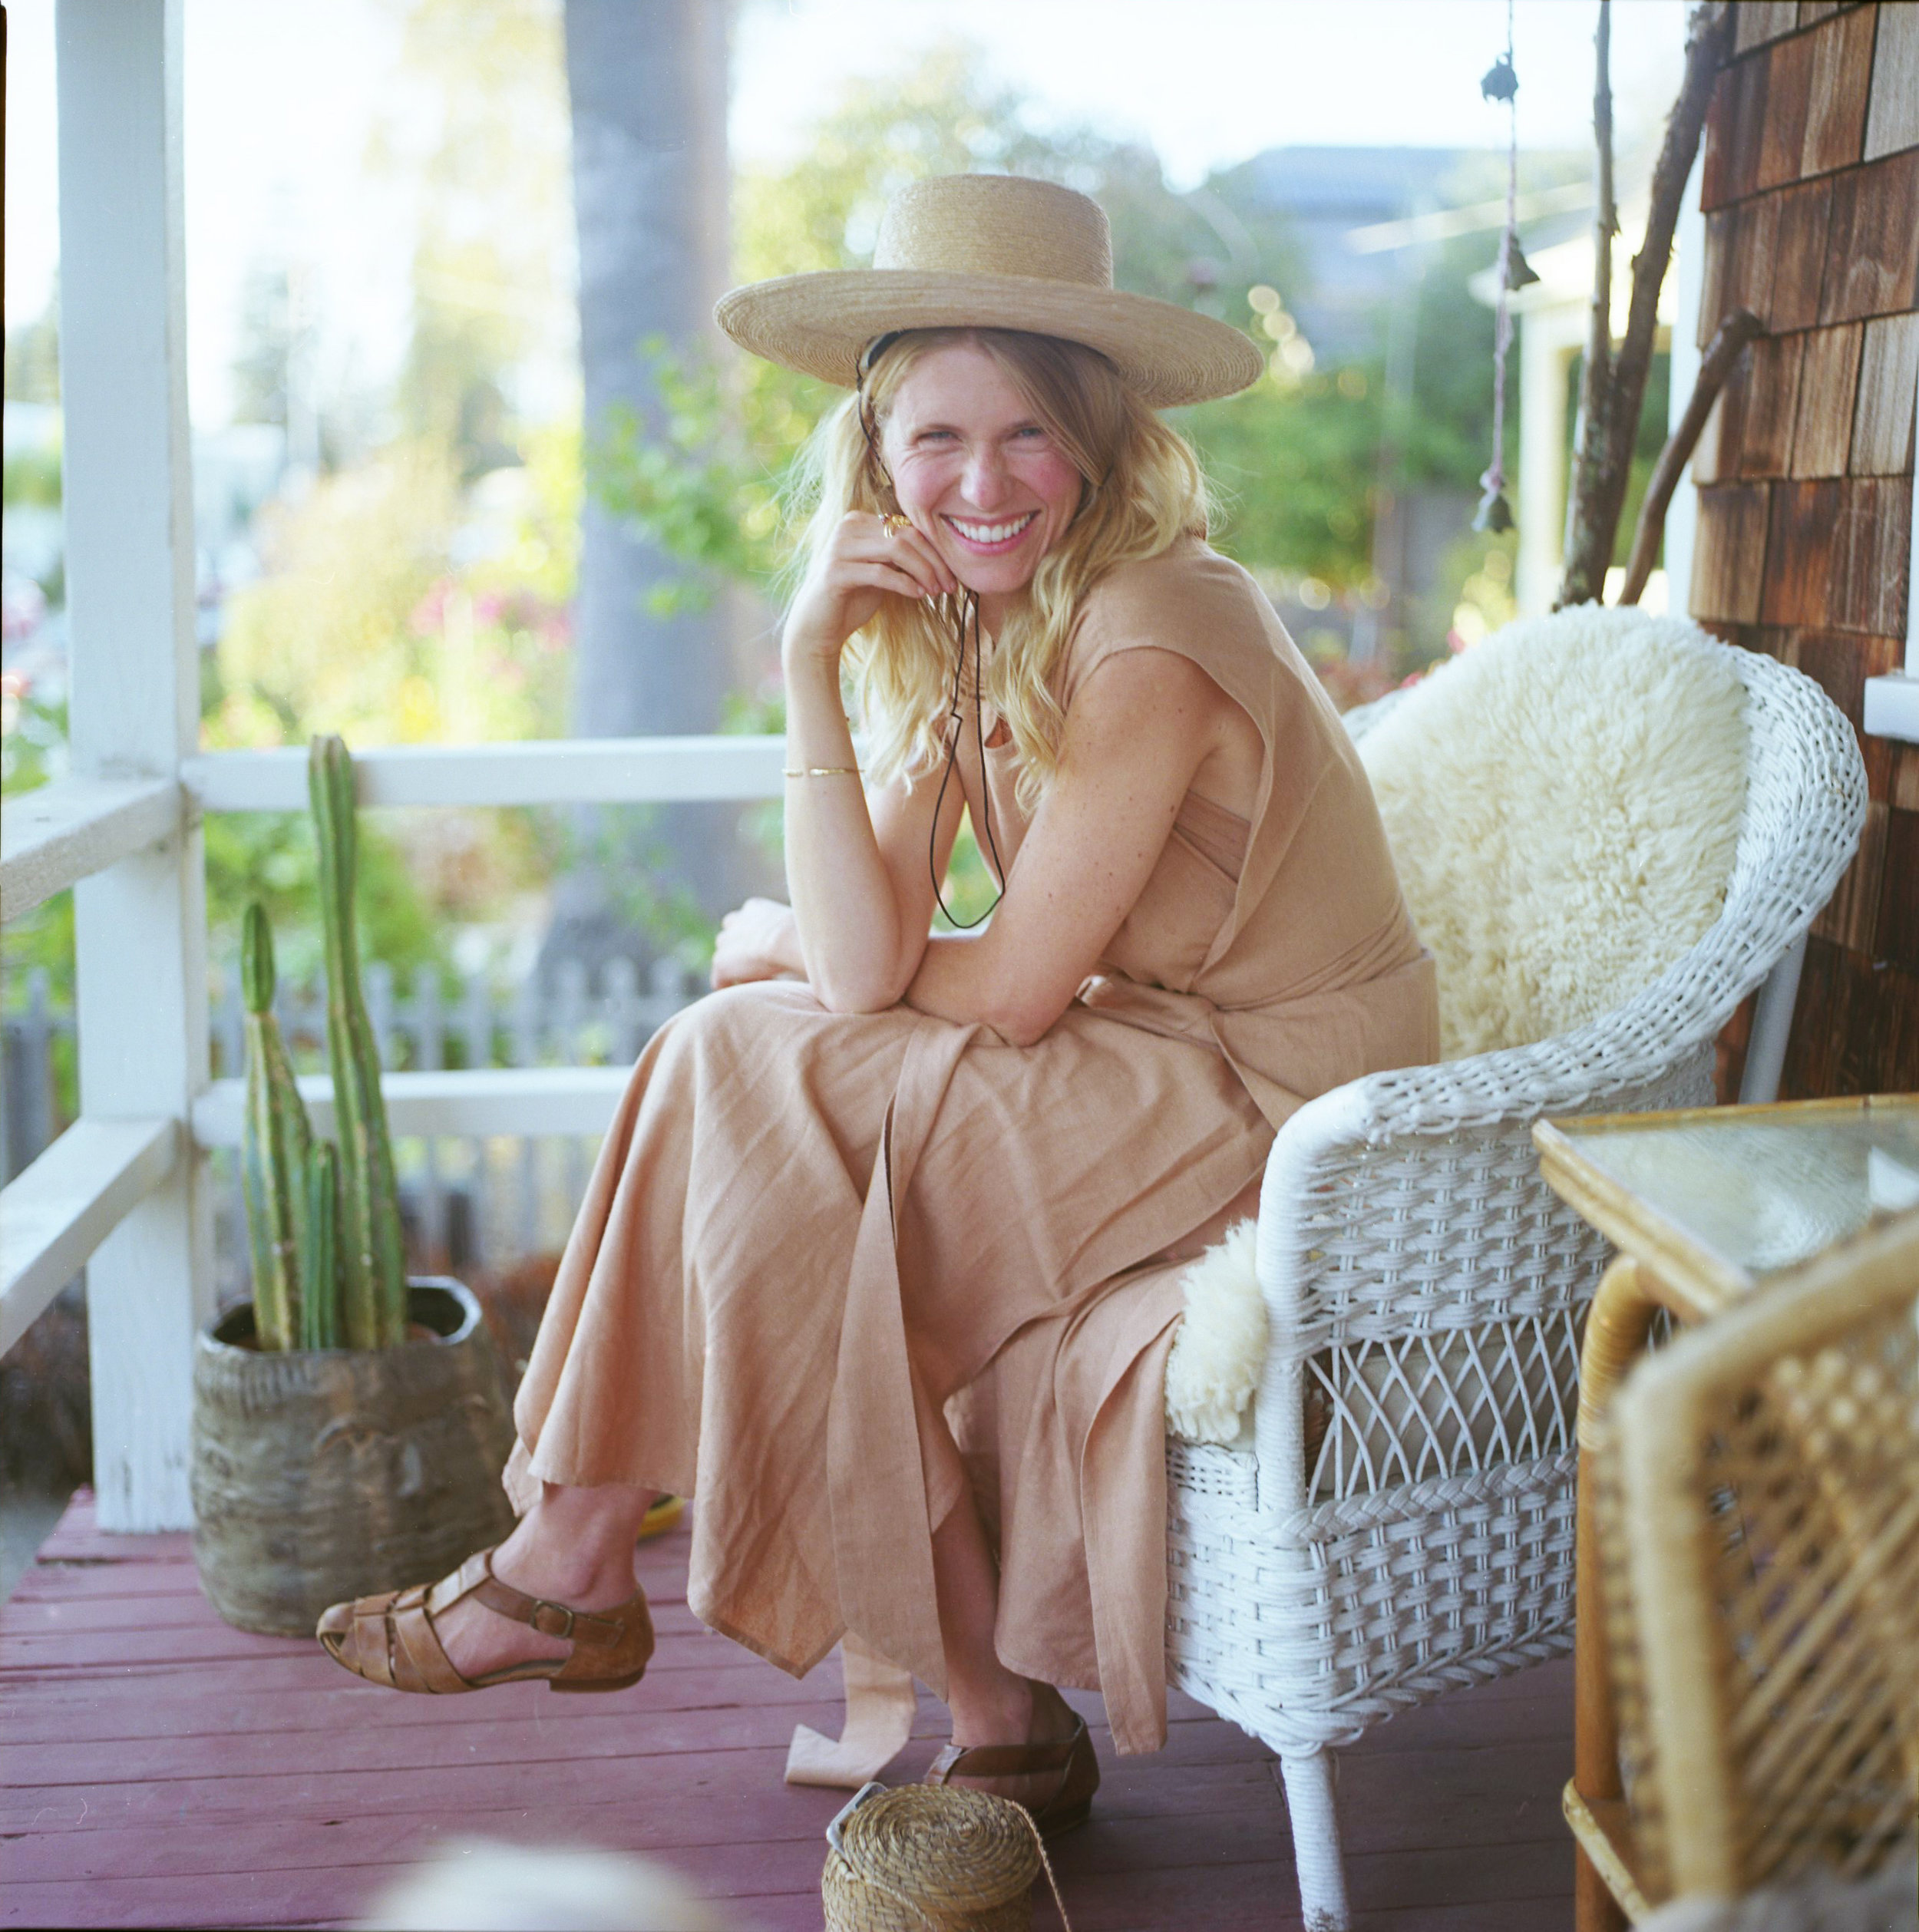 Shepherdess Kelci Potter smiles with pure joy on her front porch in Santa Cruz, California. Kelci hand crafts a line of solid gold stackers and unique pieces with spirit and soul as her cornerstones of a wildly successful and loved line.